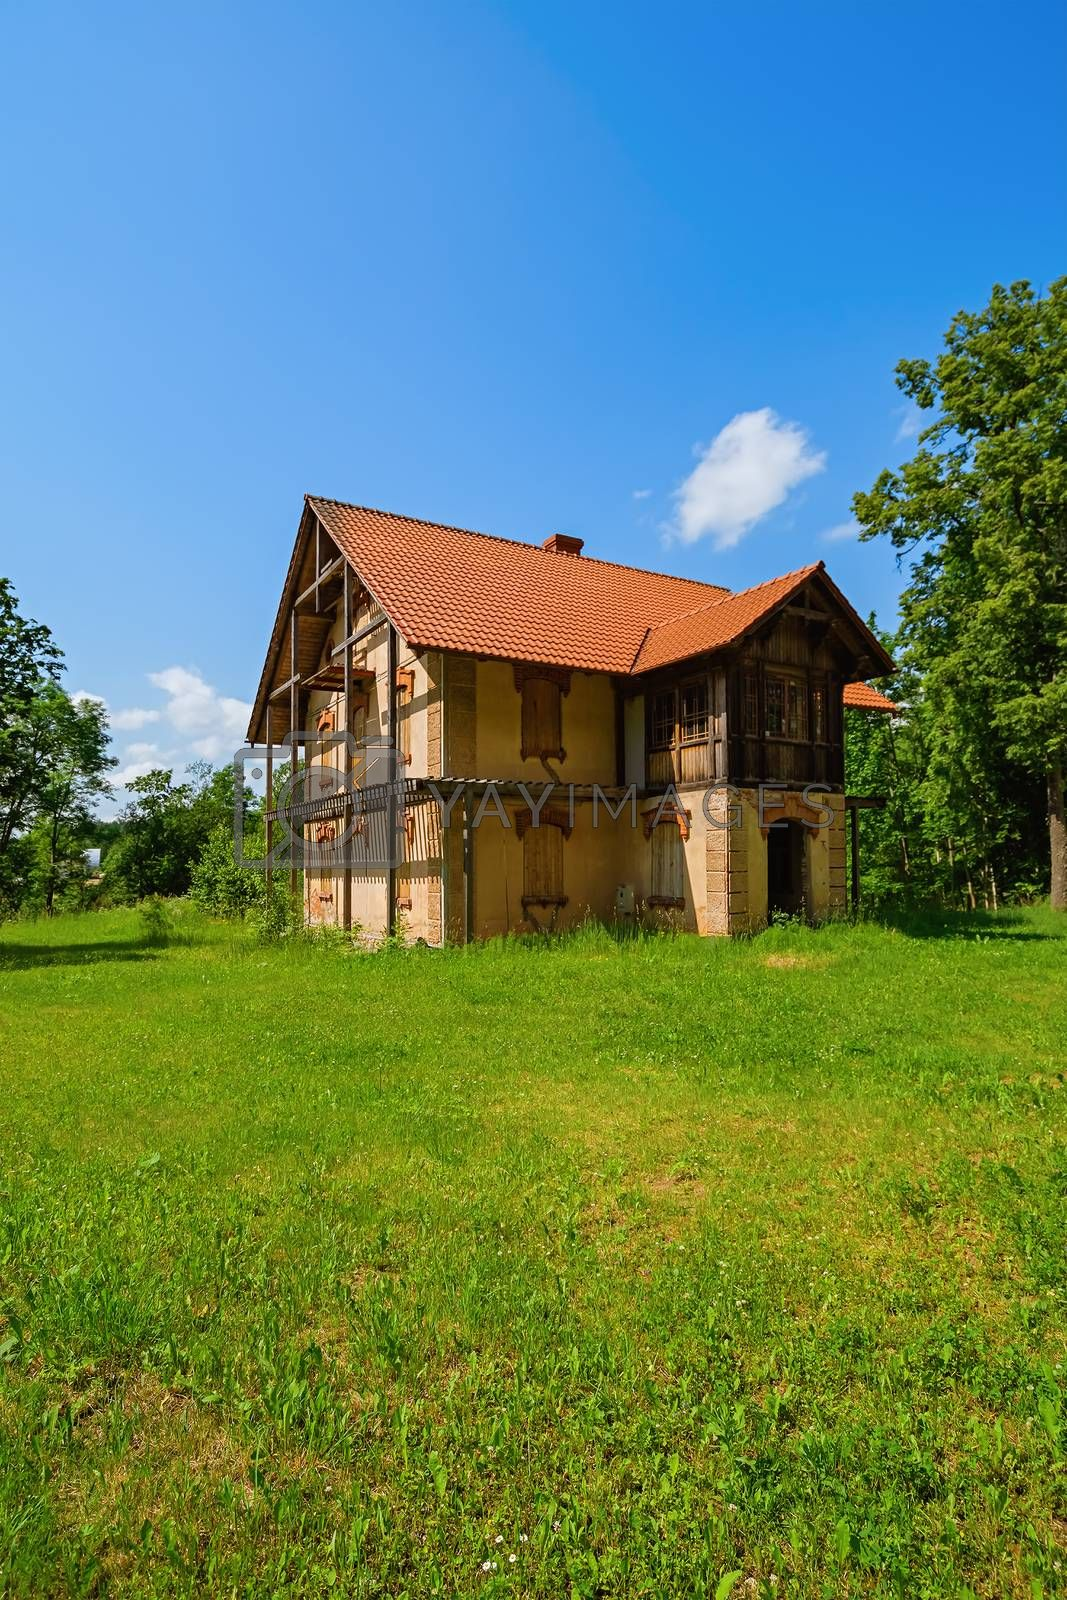 Abandoned old house in the countryside